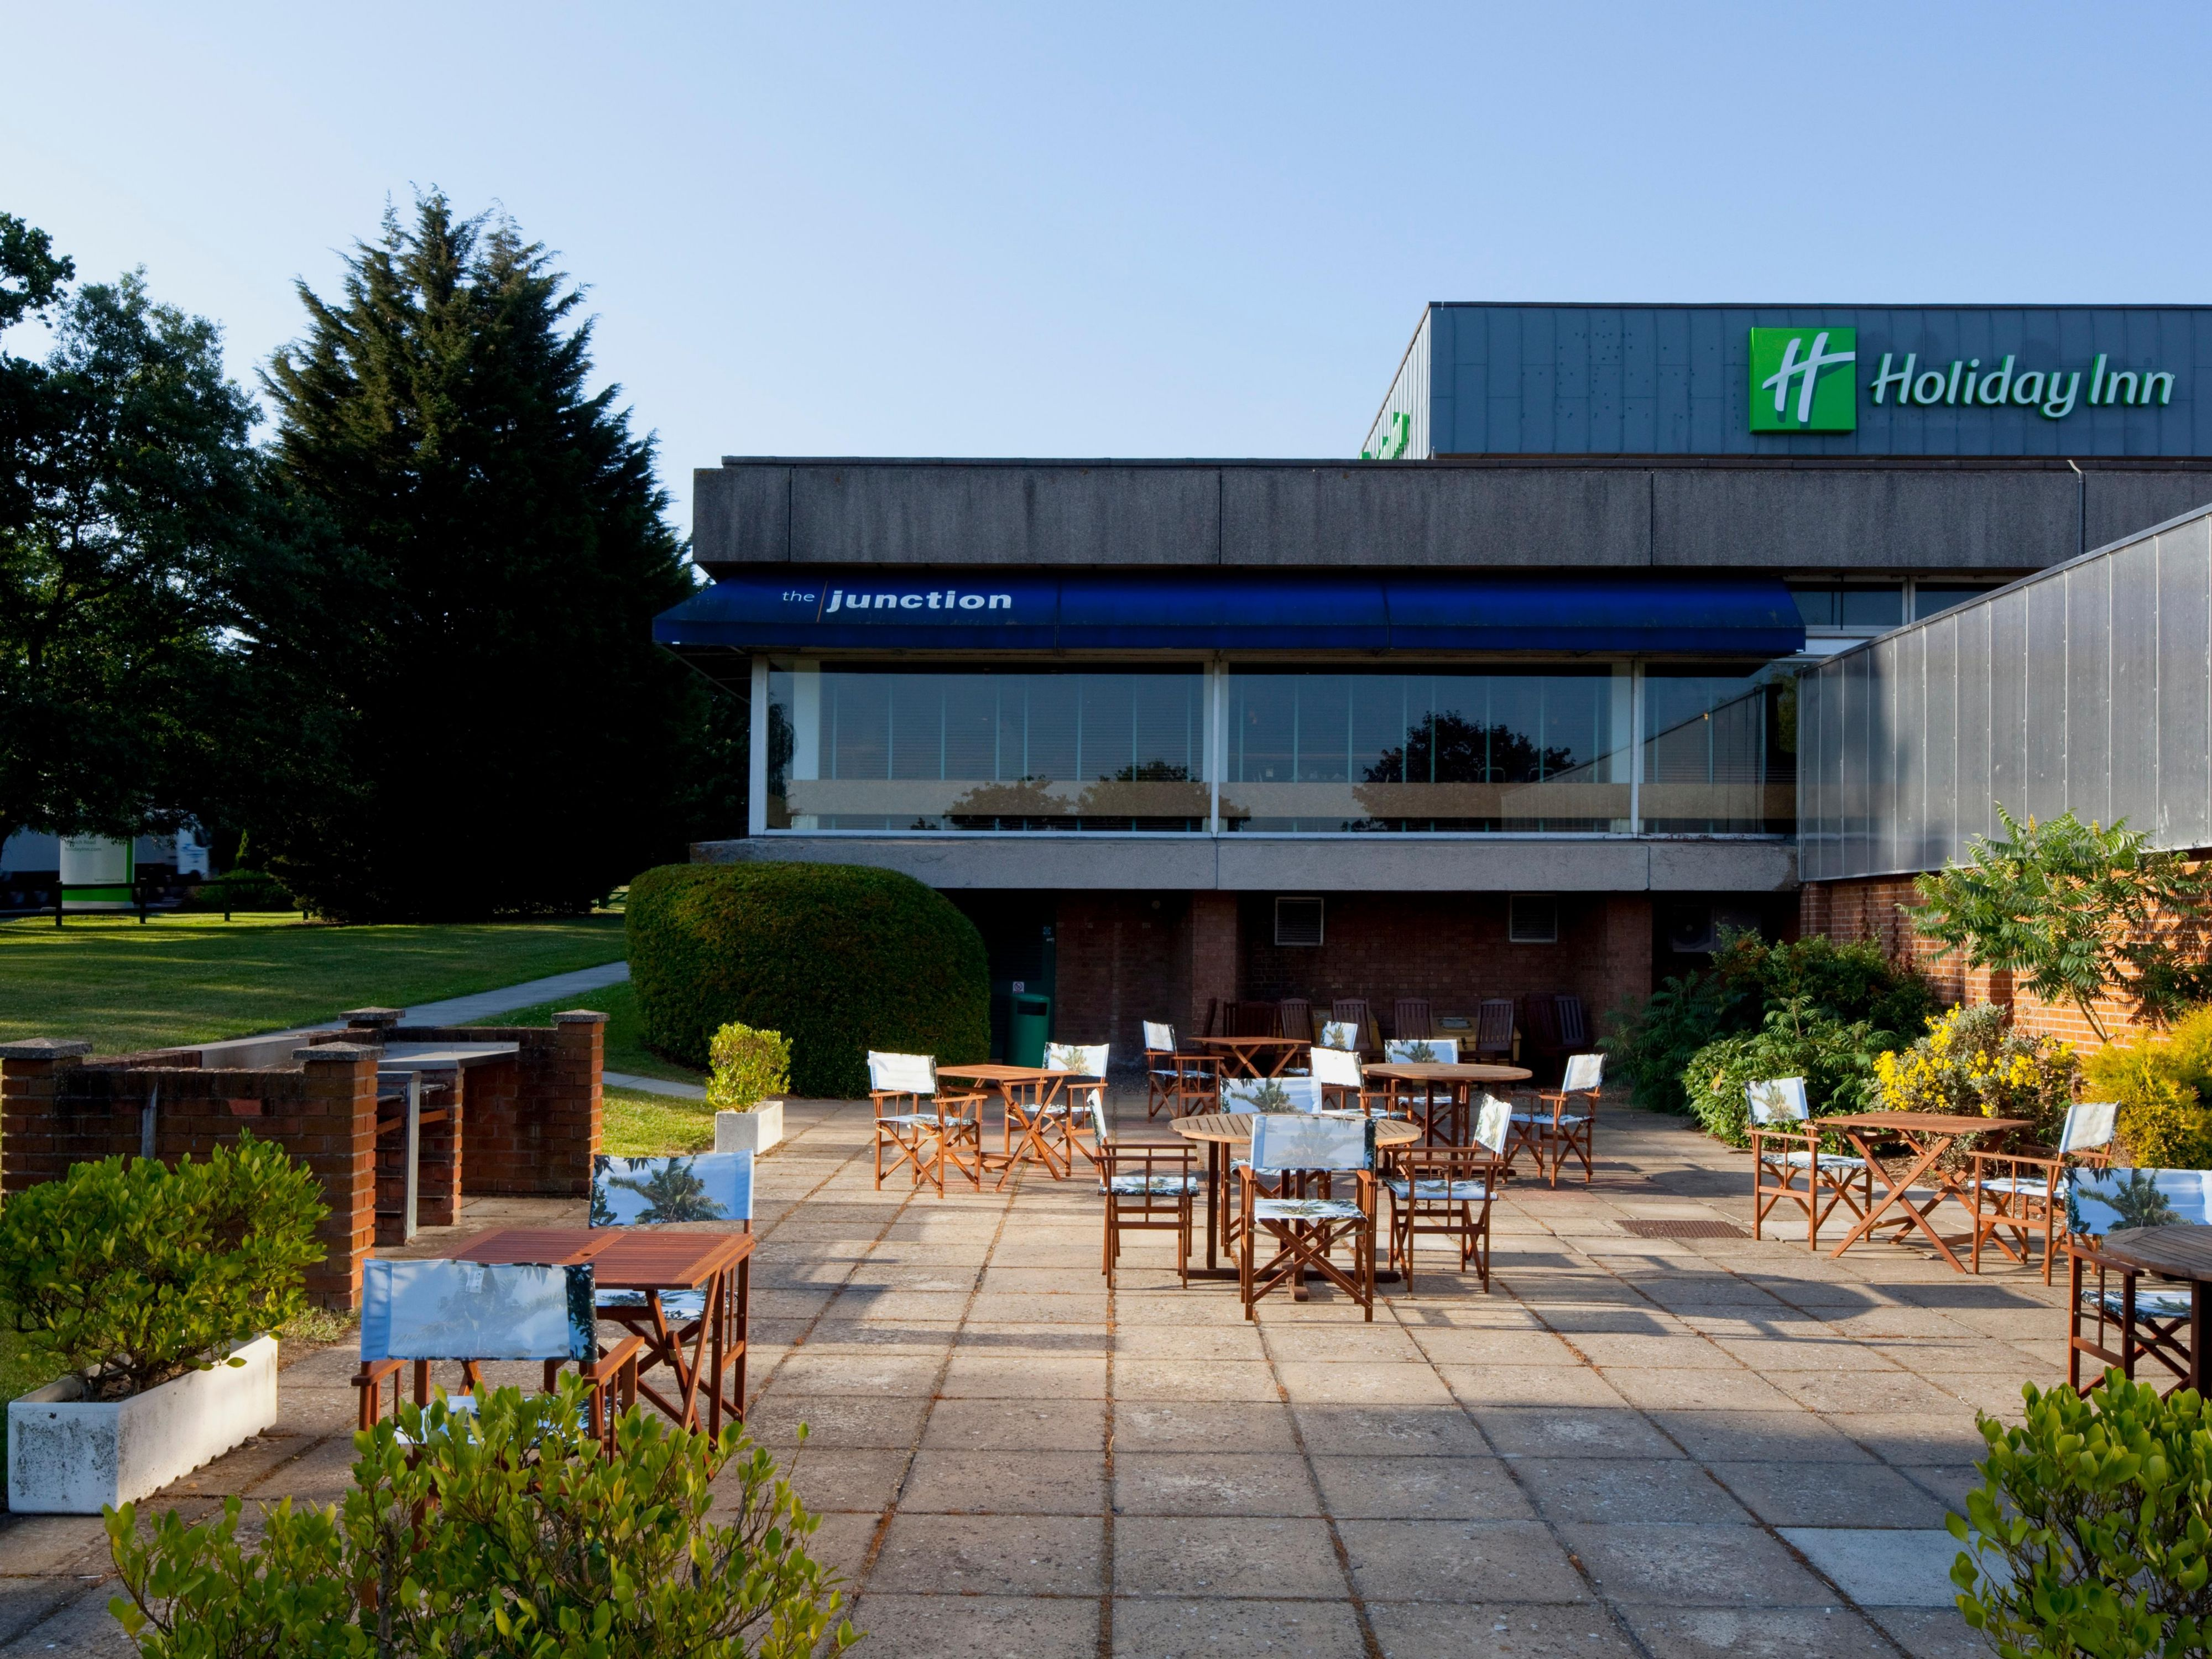 Enjoy a drink on the terrace at Holiday Inn Norwich